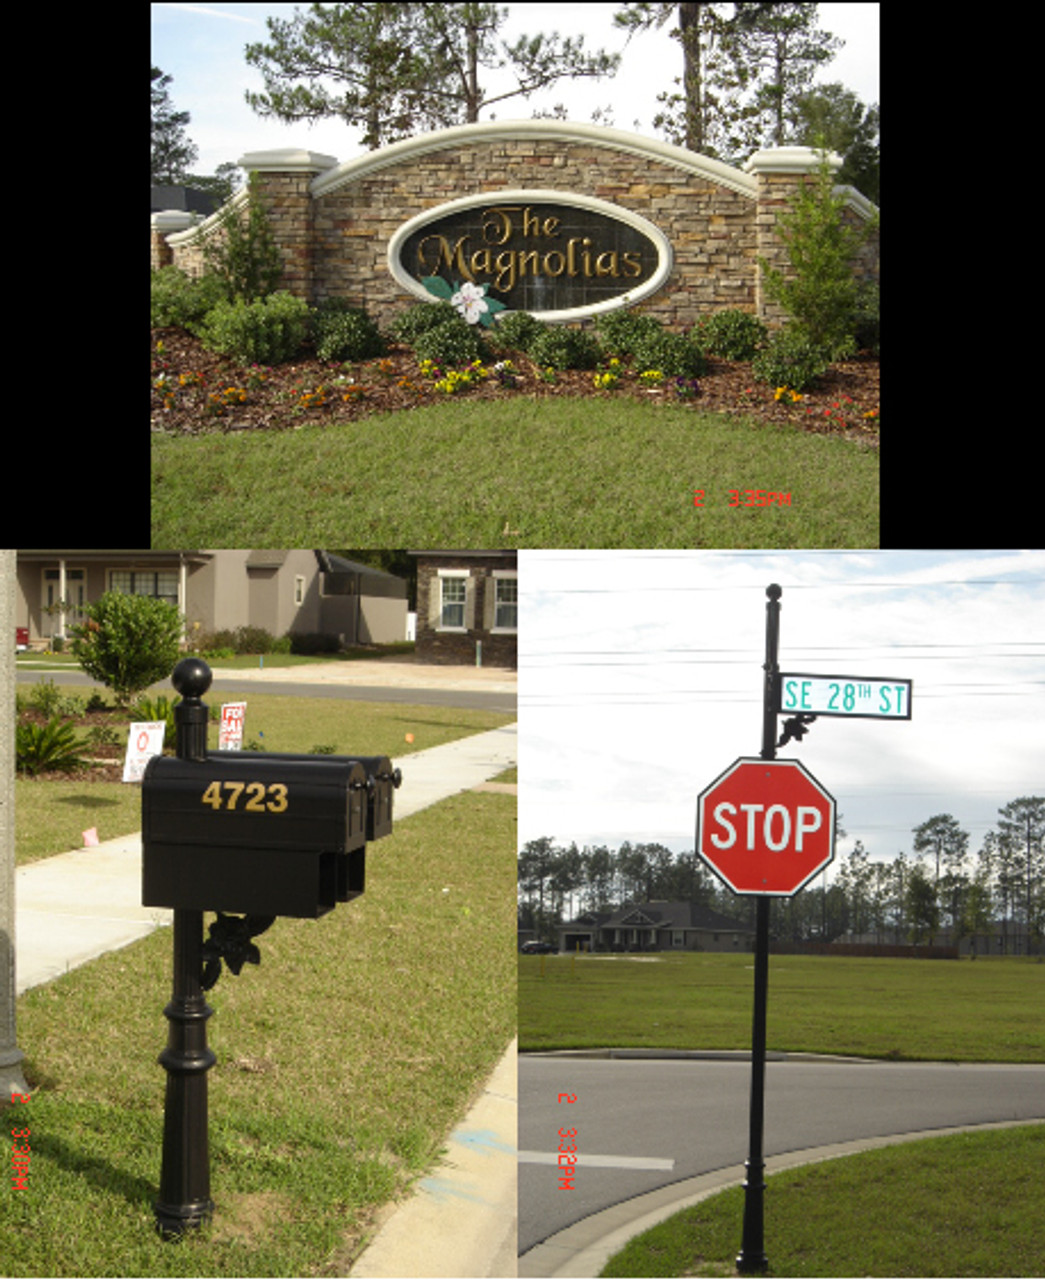 Double mount Mailbox, News box, Magnolia accent, Round Pole, Ball Finial, Europa Base. Street Pole, Ball Finial, Street Blade Paddle, Stop Sign & Backer. To request a quote, please include dimensions specific to your project.